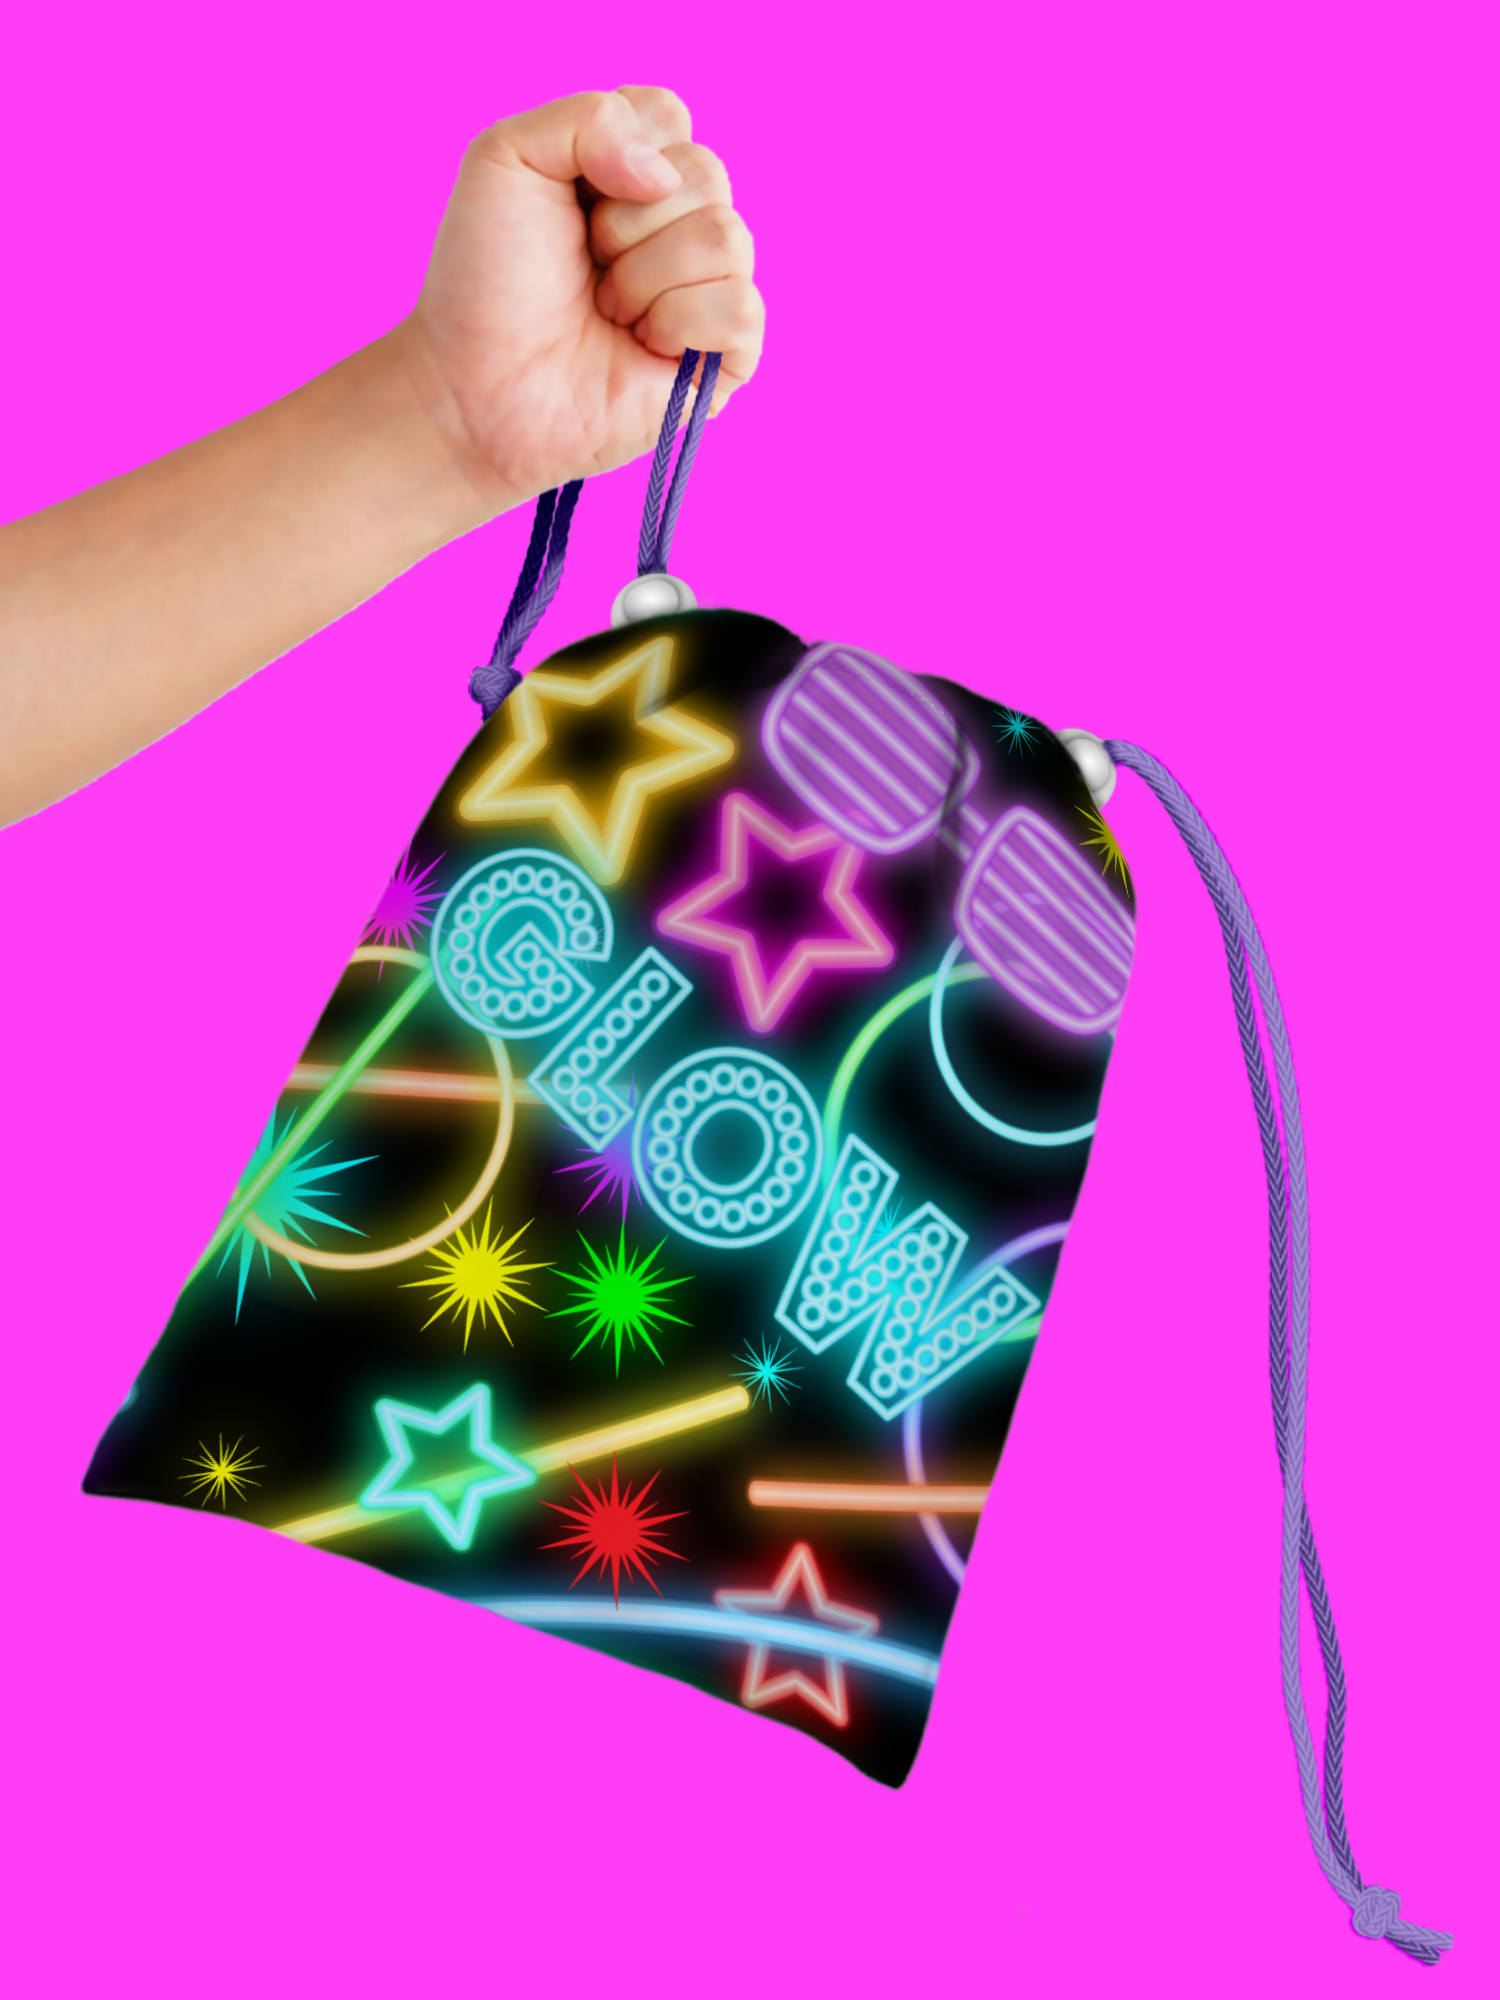 Glow Light Neon Drawstring Tote Bag (10 Pack) - BirthdayGalore.com